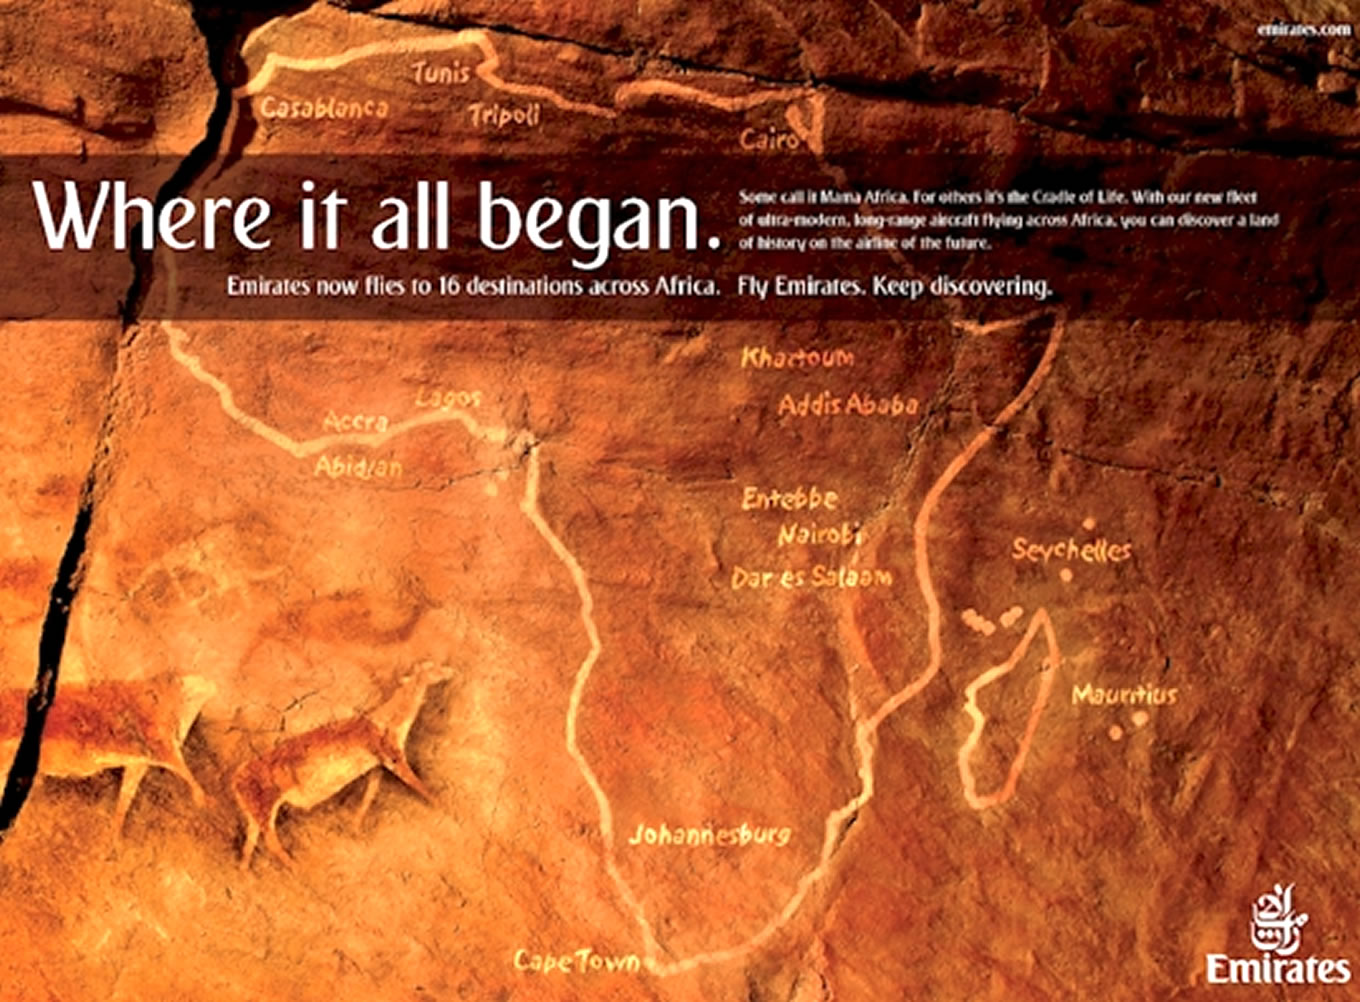 Where It All Began, Keep Discovering Marketing Campaign by Emirates